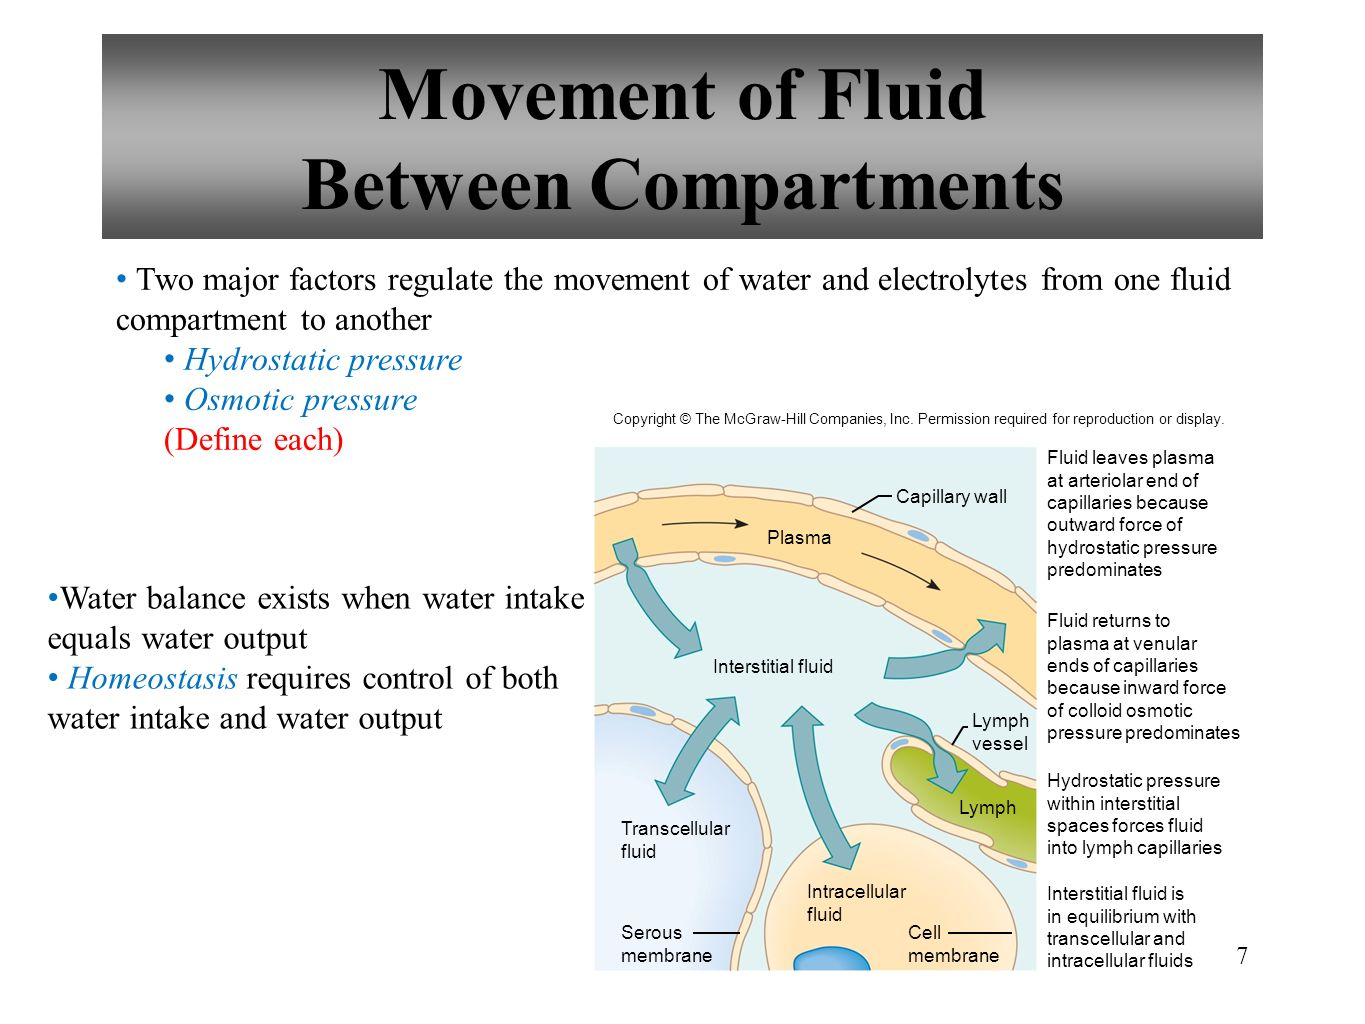 Movement of Fluid Between Compartments